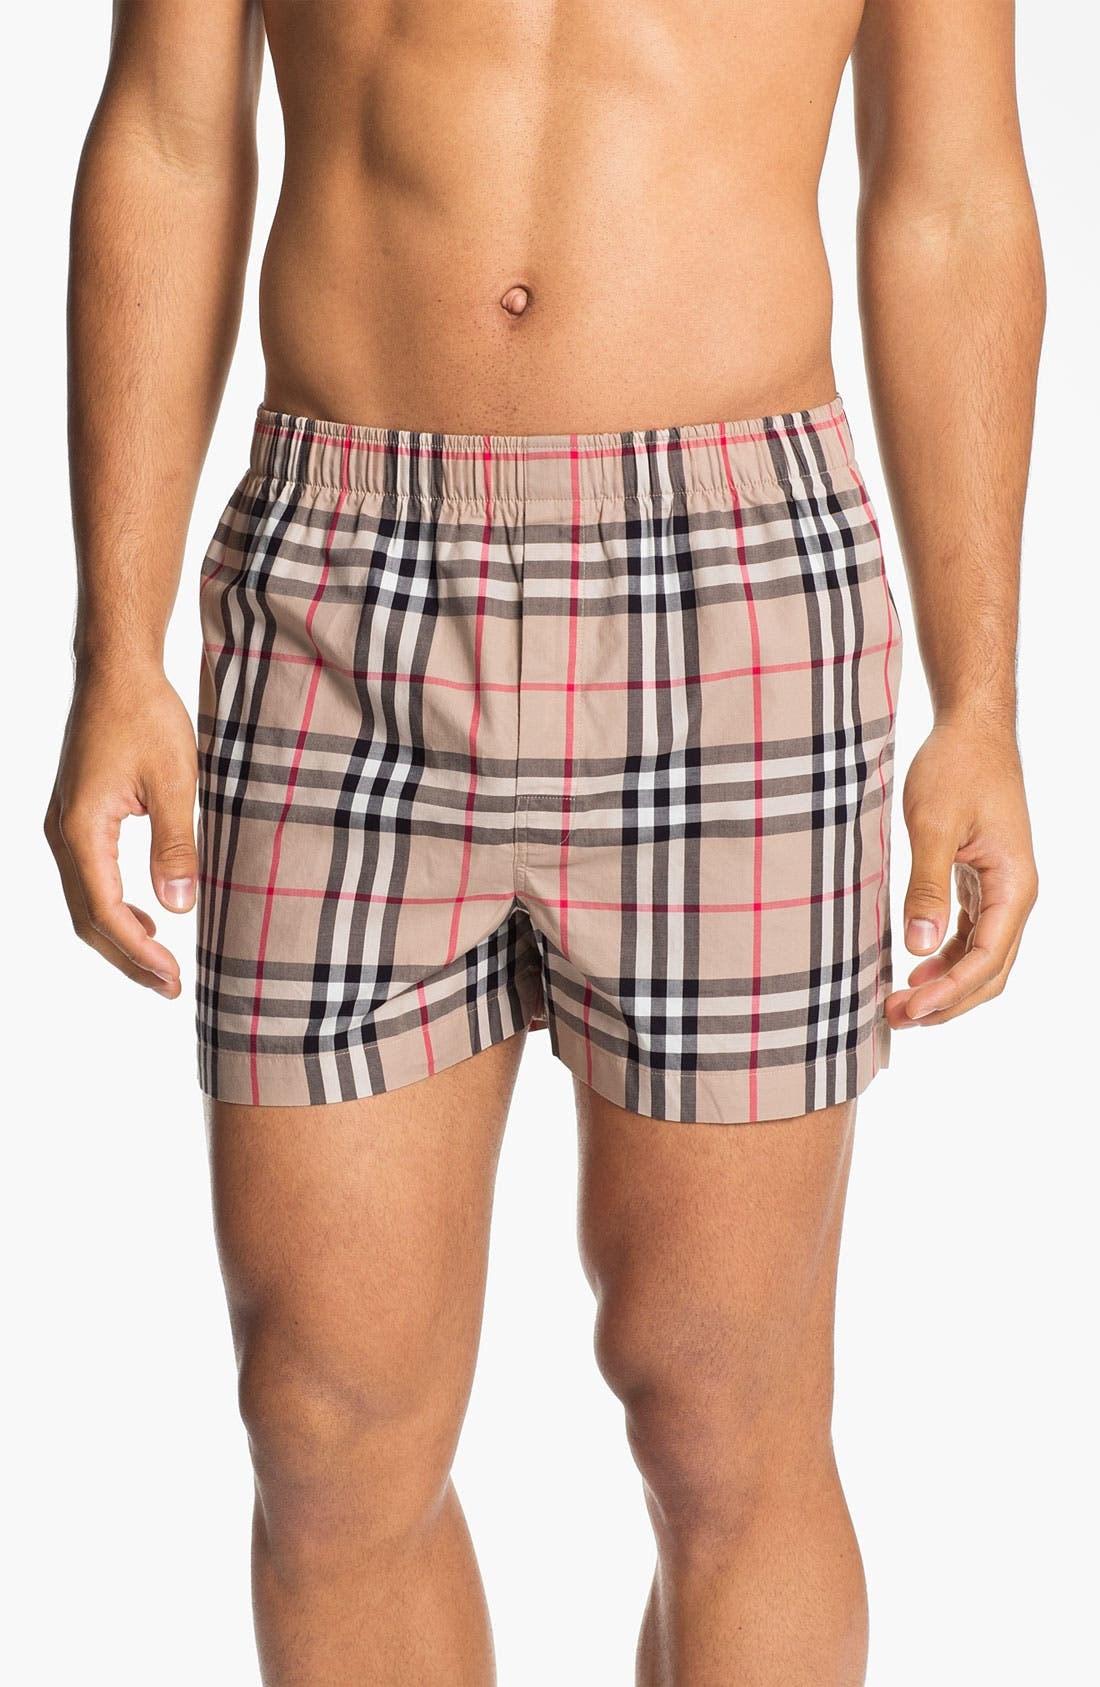 Alternate Image 1 Selected - Burberry Cotton Boxers (Assorted 3-Pack)